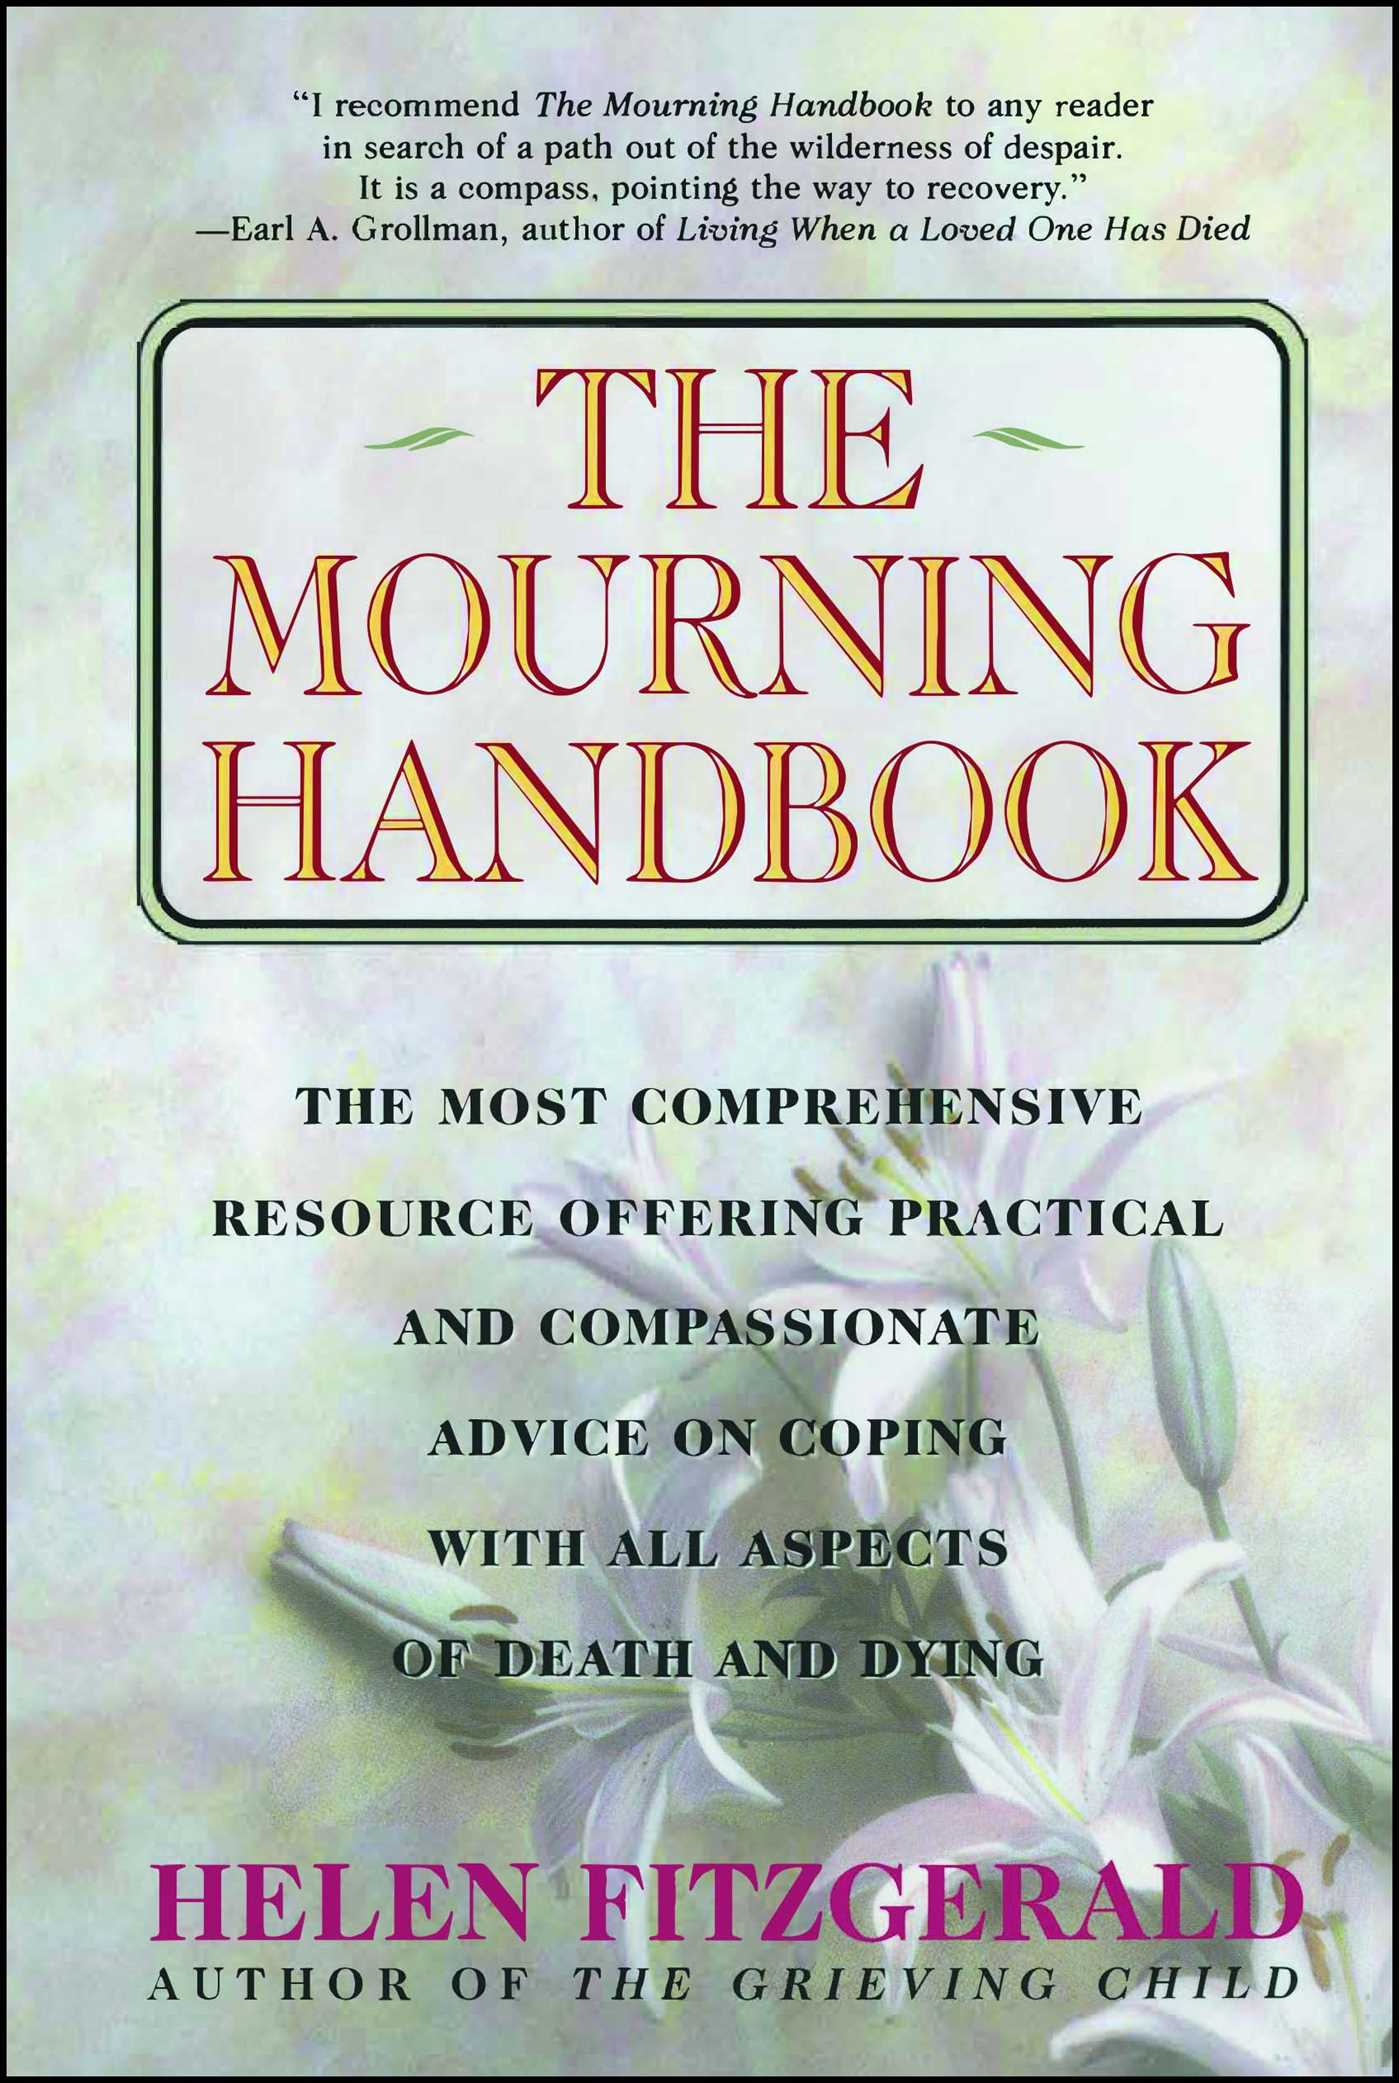 Book Cover Image (jpg): The Mourning Handbook